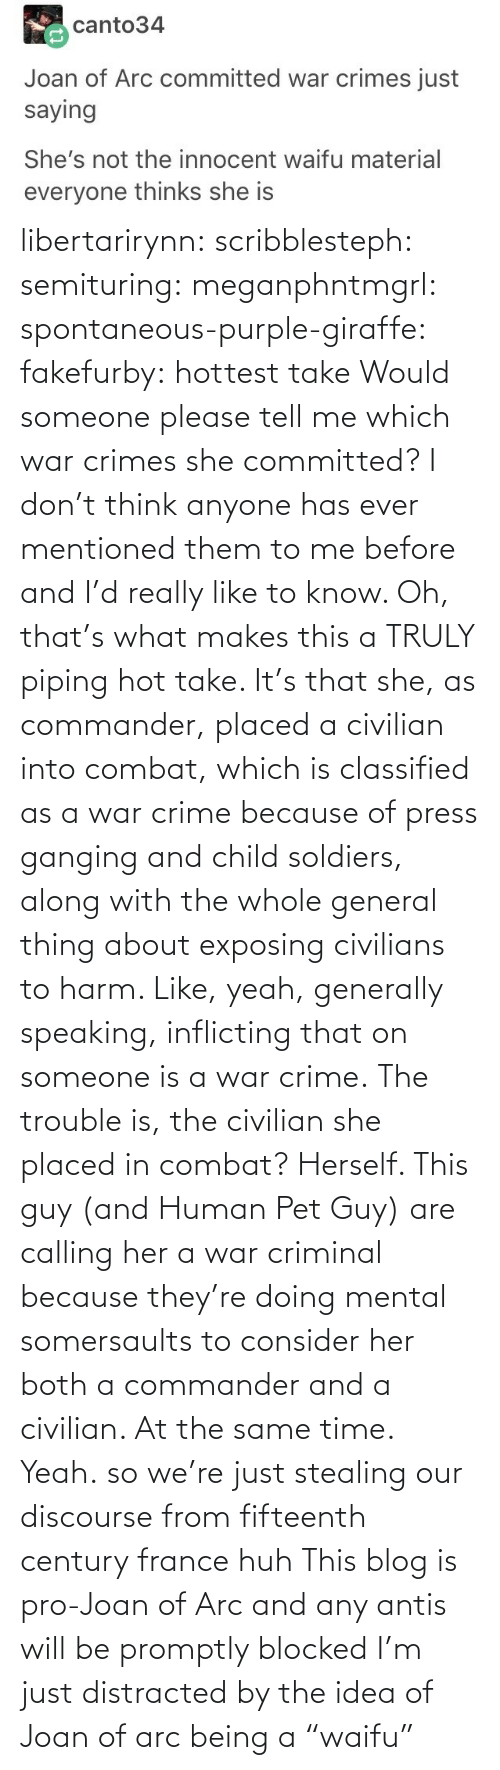 "child soldiers: libertarirynn: scribblesteph:  semituring:  meganphntmgrl:  spontaneous-purple-giraffe:   fakefurby: hottest take  Would someone please tell me which war crimes she committed? I don't think anyone has ever mentioned them to me before and I'd really like to know.    Oh, that's what makes this a TRULY piping hot take. It's that she, as commander, placed a civilian into combat, which is classified as a war crime because of press ganging and child soldiers, along with the whole general thing about exposing civilians to harm. Like, yeah, generally speaking, inflicting that on someone is a war crime. The trouble is, the civilian she placed in combat? Herself.  This guy (and Human Pet Guy) are calling her a war criminal because they're doing mental somersaults to consider her both a commander and a civilian. At the same time.  Yeah.  so we're just stealing our discourse from fifteenth century france huh   This blog is pro-Joan of Arc and any antis will be promptly blocked   I'm just distracted by the idea of Joan of arc being a ""waifu"""